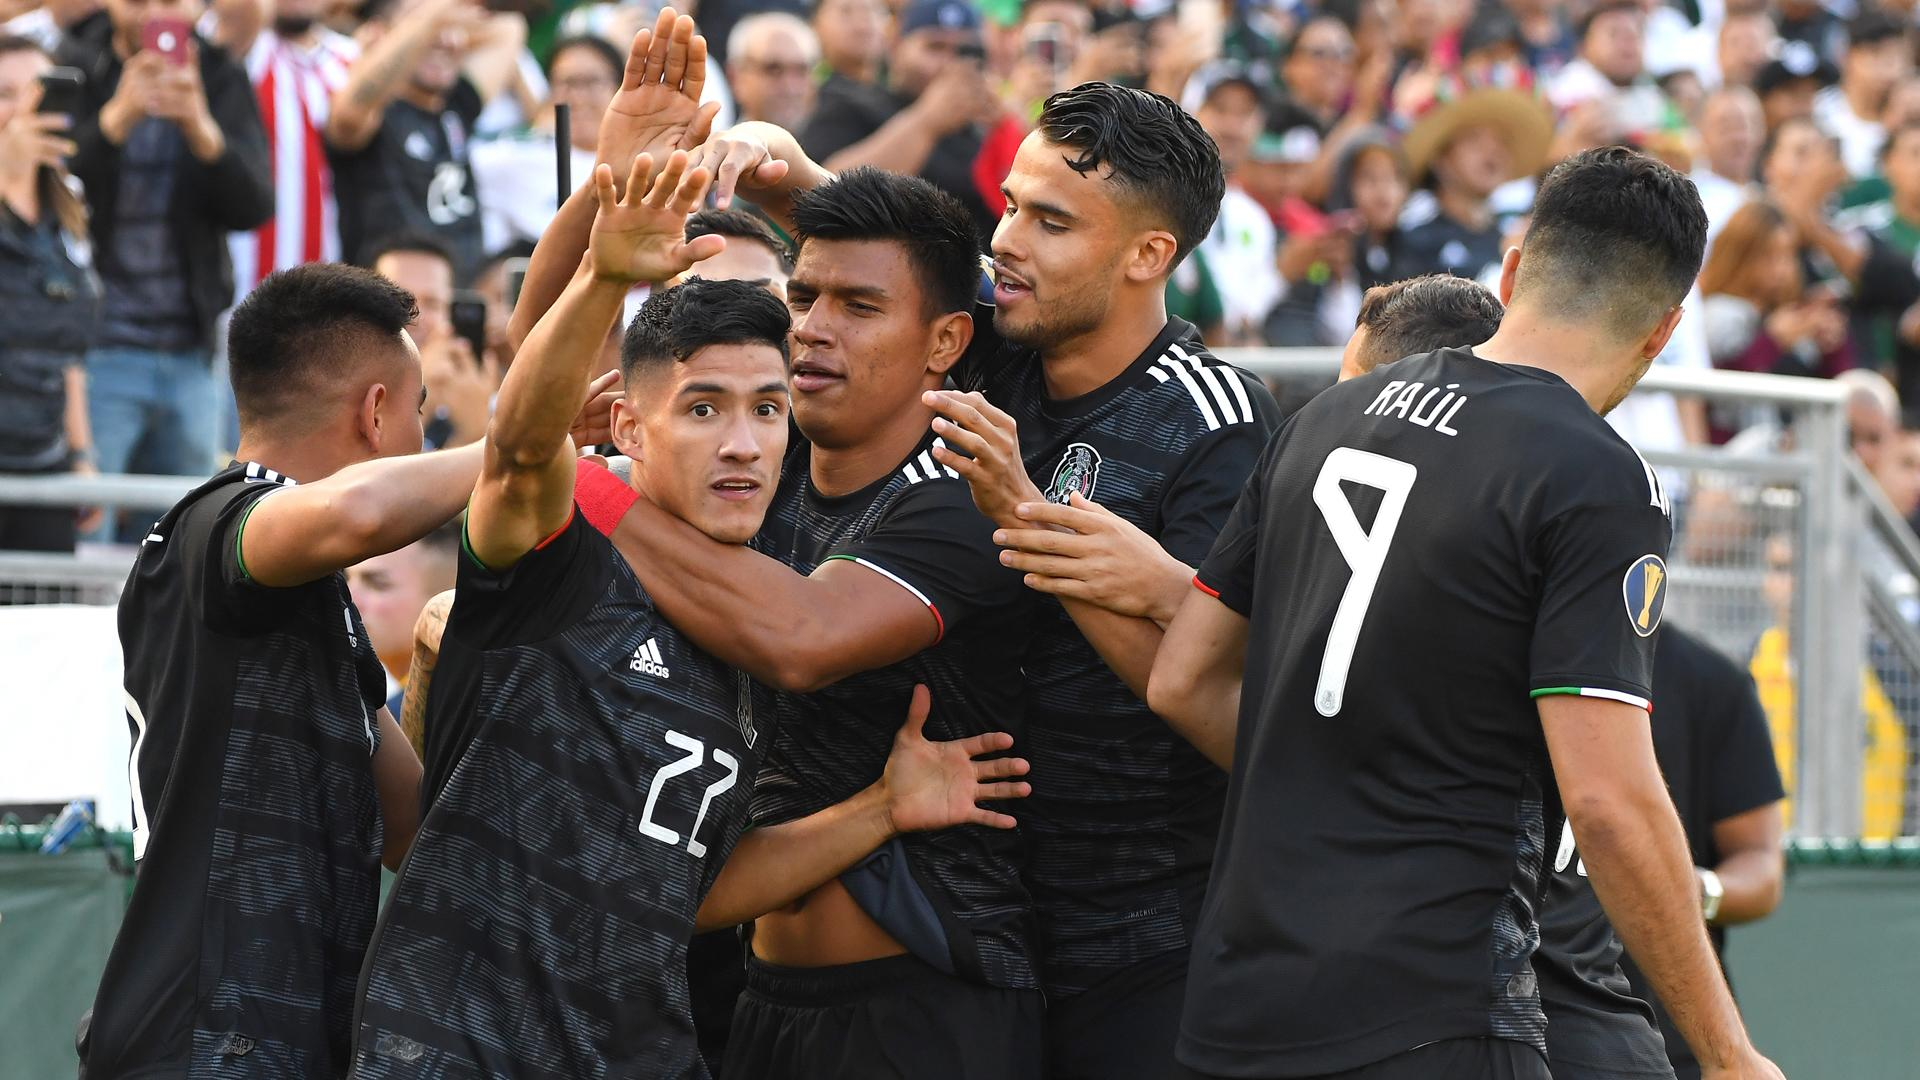 Mexico 7 Cuba 0: Antuna scores hat-trick in Gold Cup rout